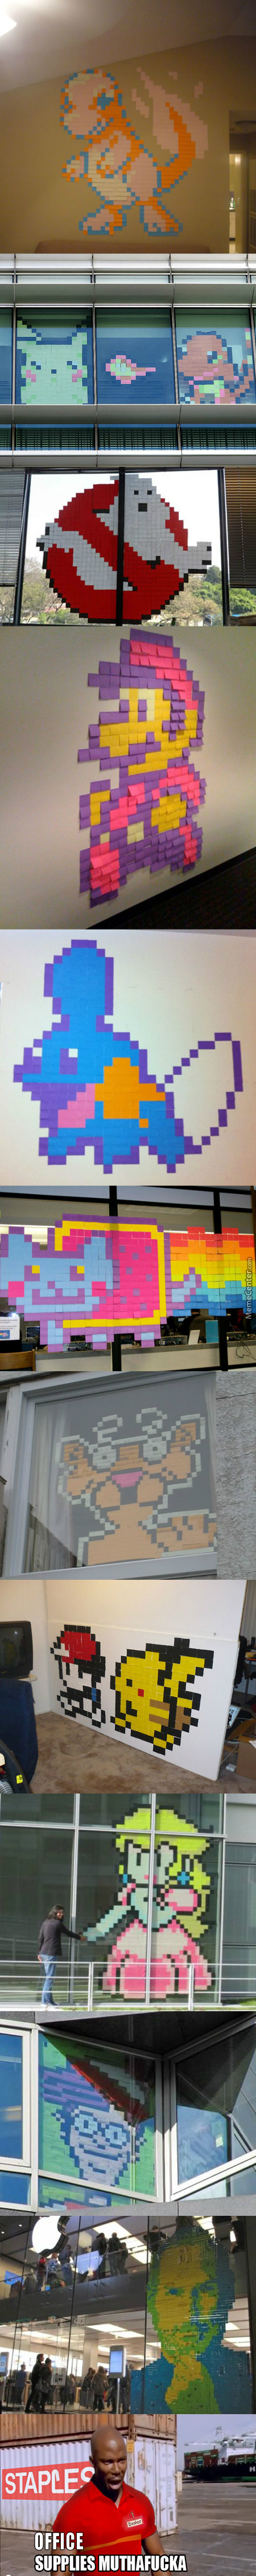 Art With Post-It